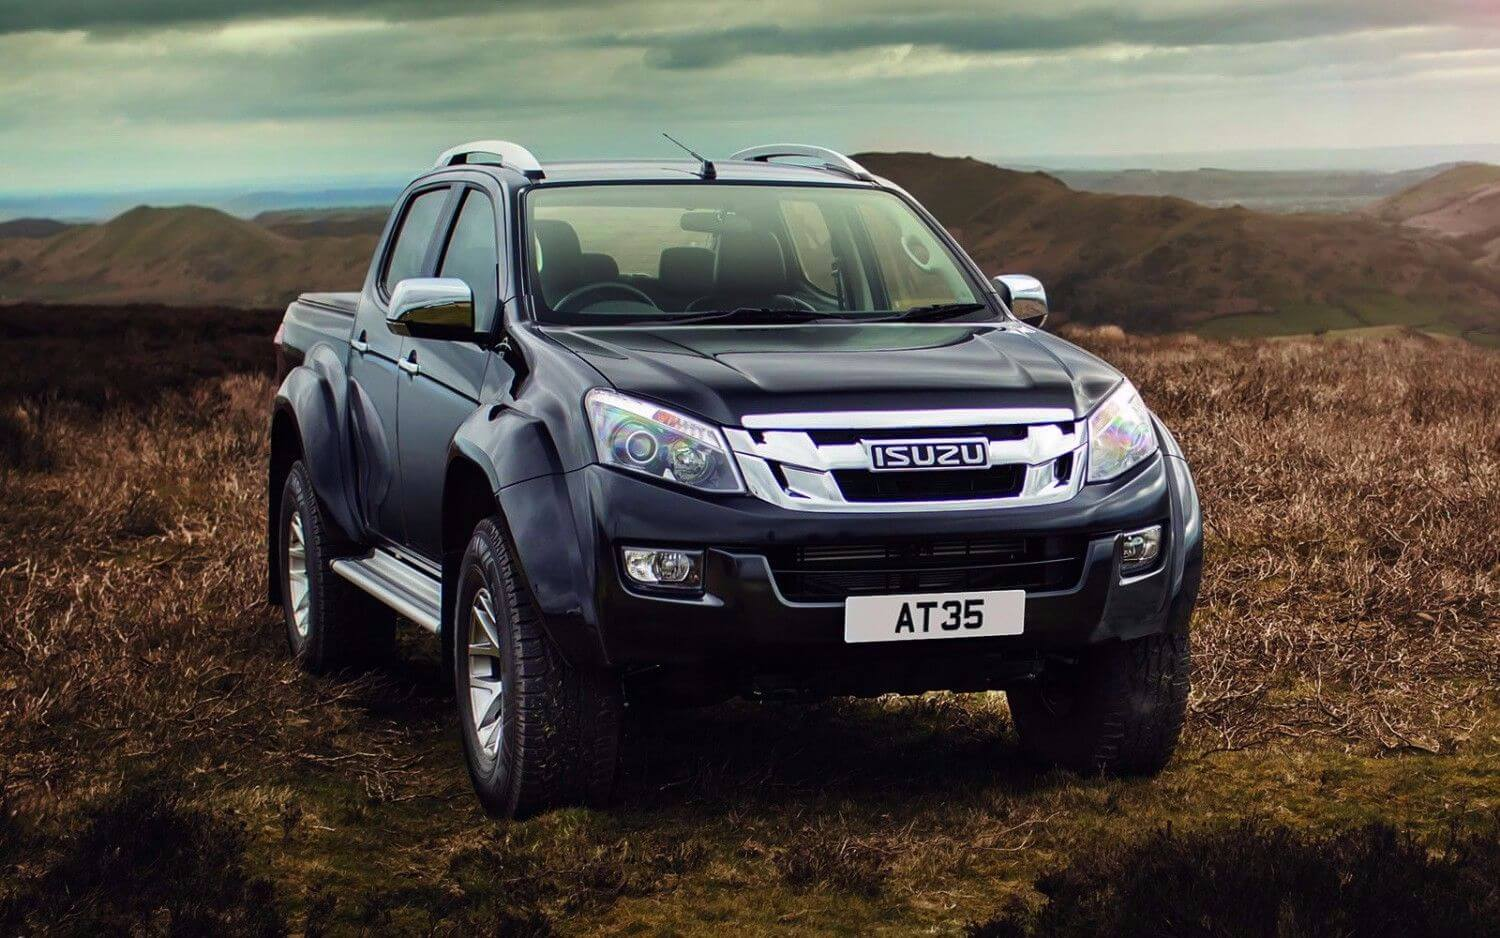 Mitsubishi & Isuzu, New/Used Cars, 4x4, Servicing, Leeds, Harrogate, Yorkshire - Midgley Motor Cars